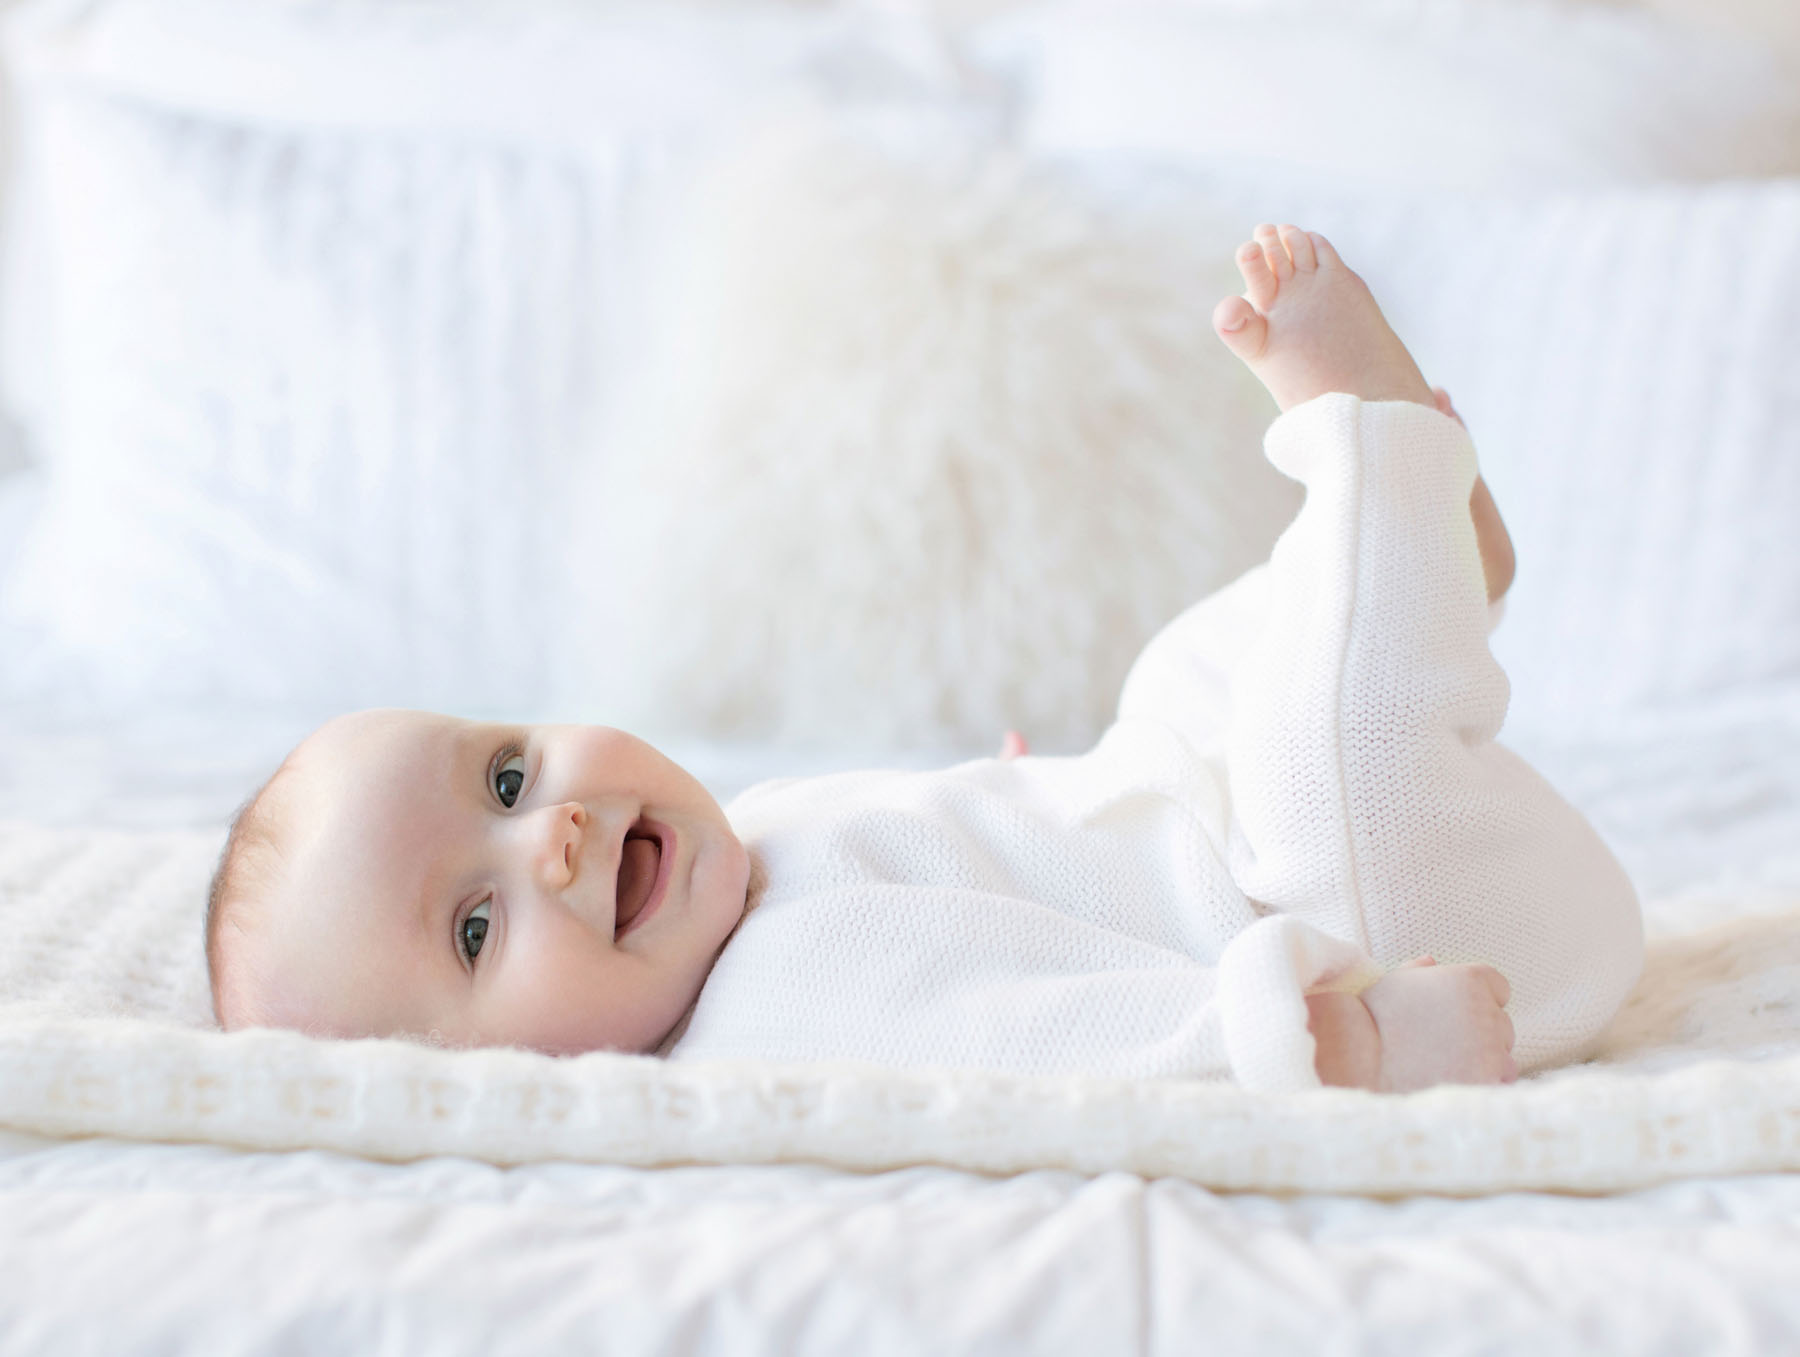 smiley_baby_in_white_on_bed_six_months.jpg